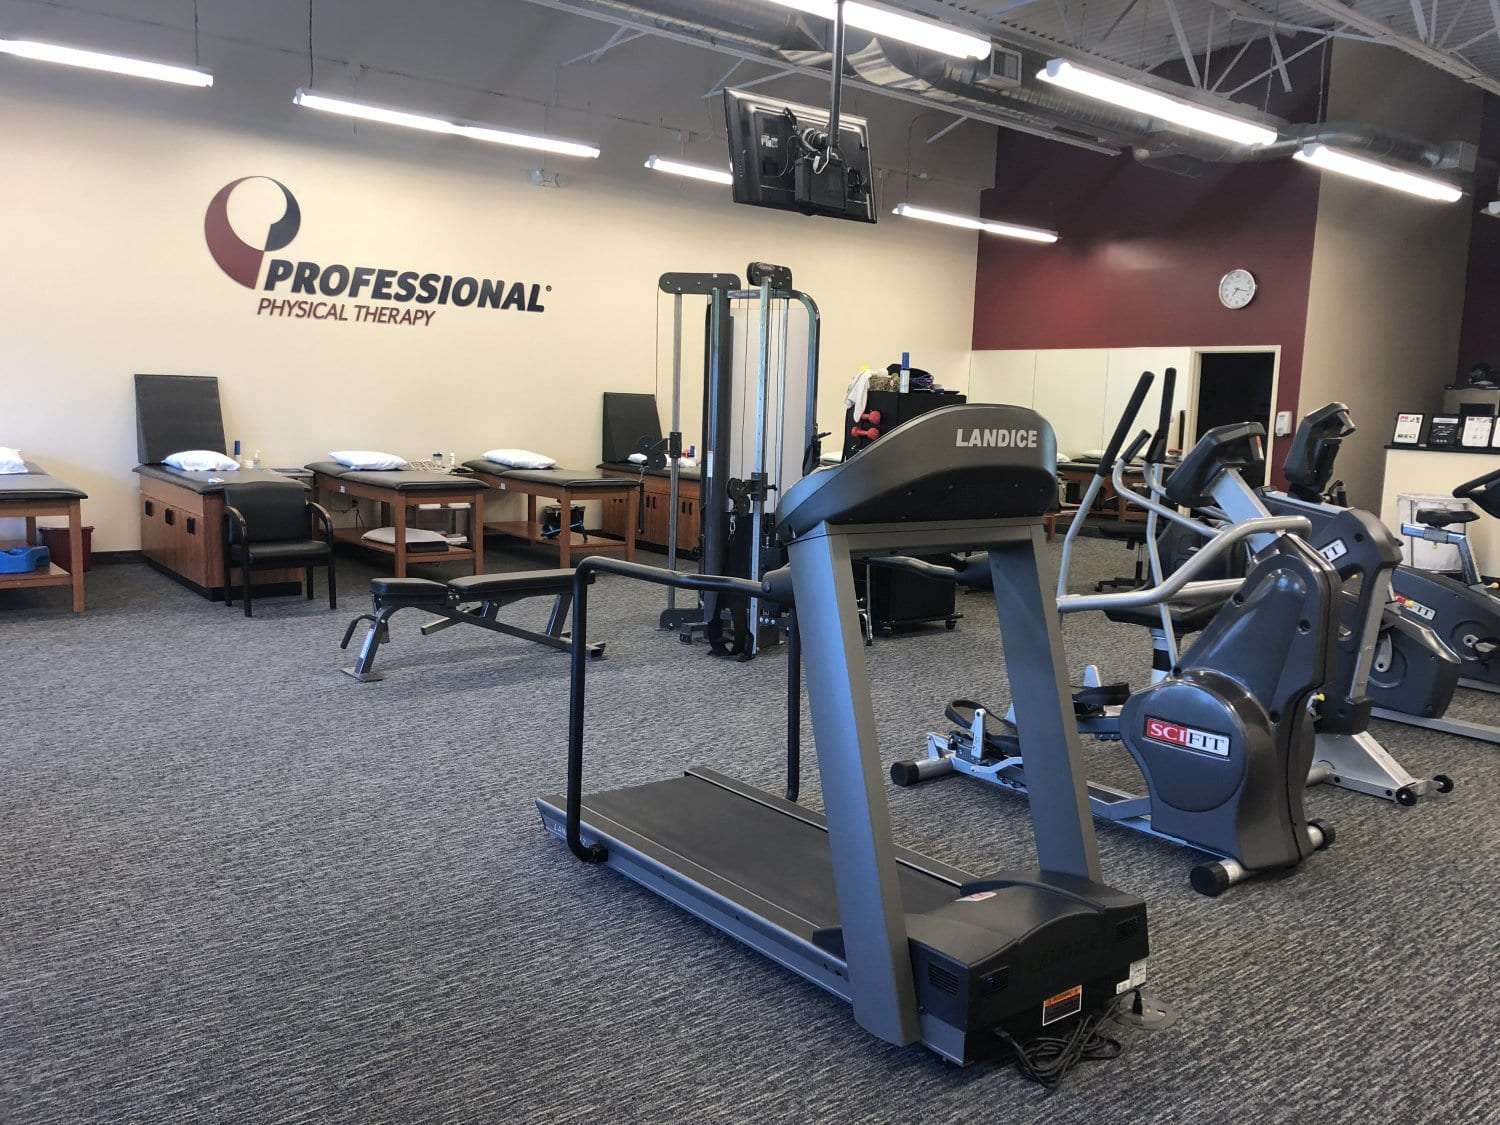 Here is an image of the interior of our River Edge, New Jersey physical therapy clinic.